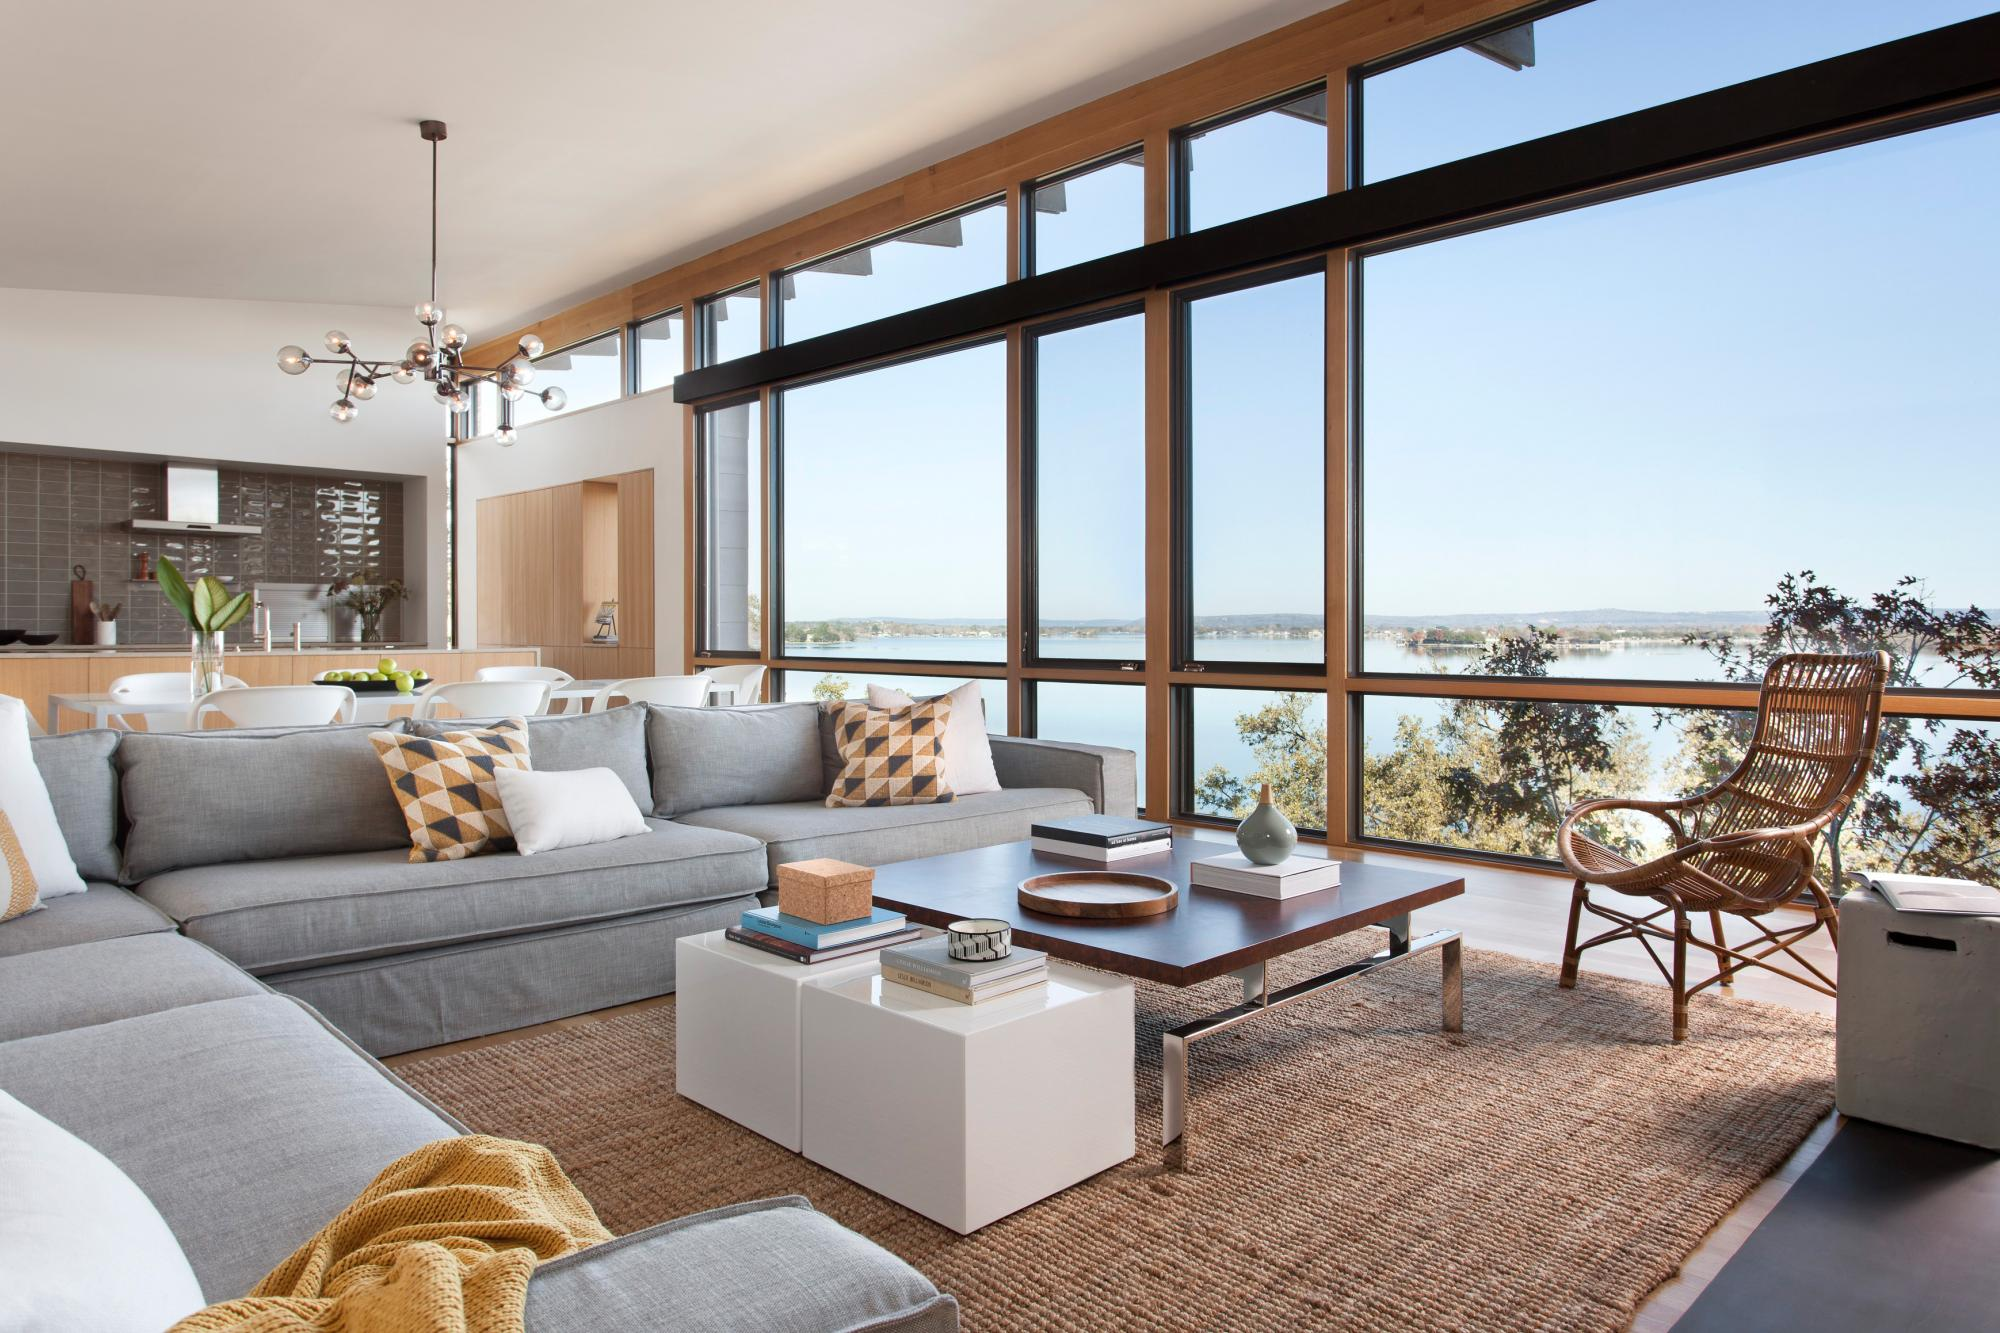 An award winning vertically structured lake house The long, narrow three-story residence dramatically culminates at the top floor, set just above the tree line and providing a nearly 180-degree view of the lake beyond